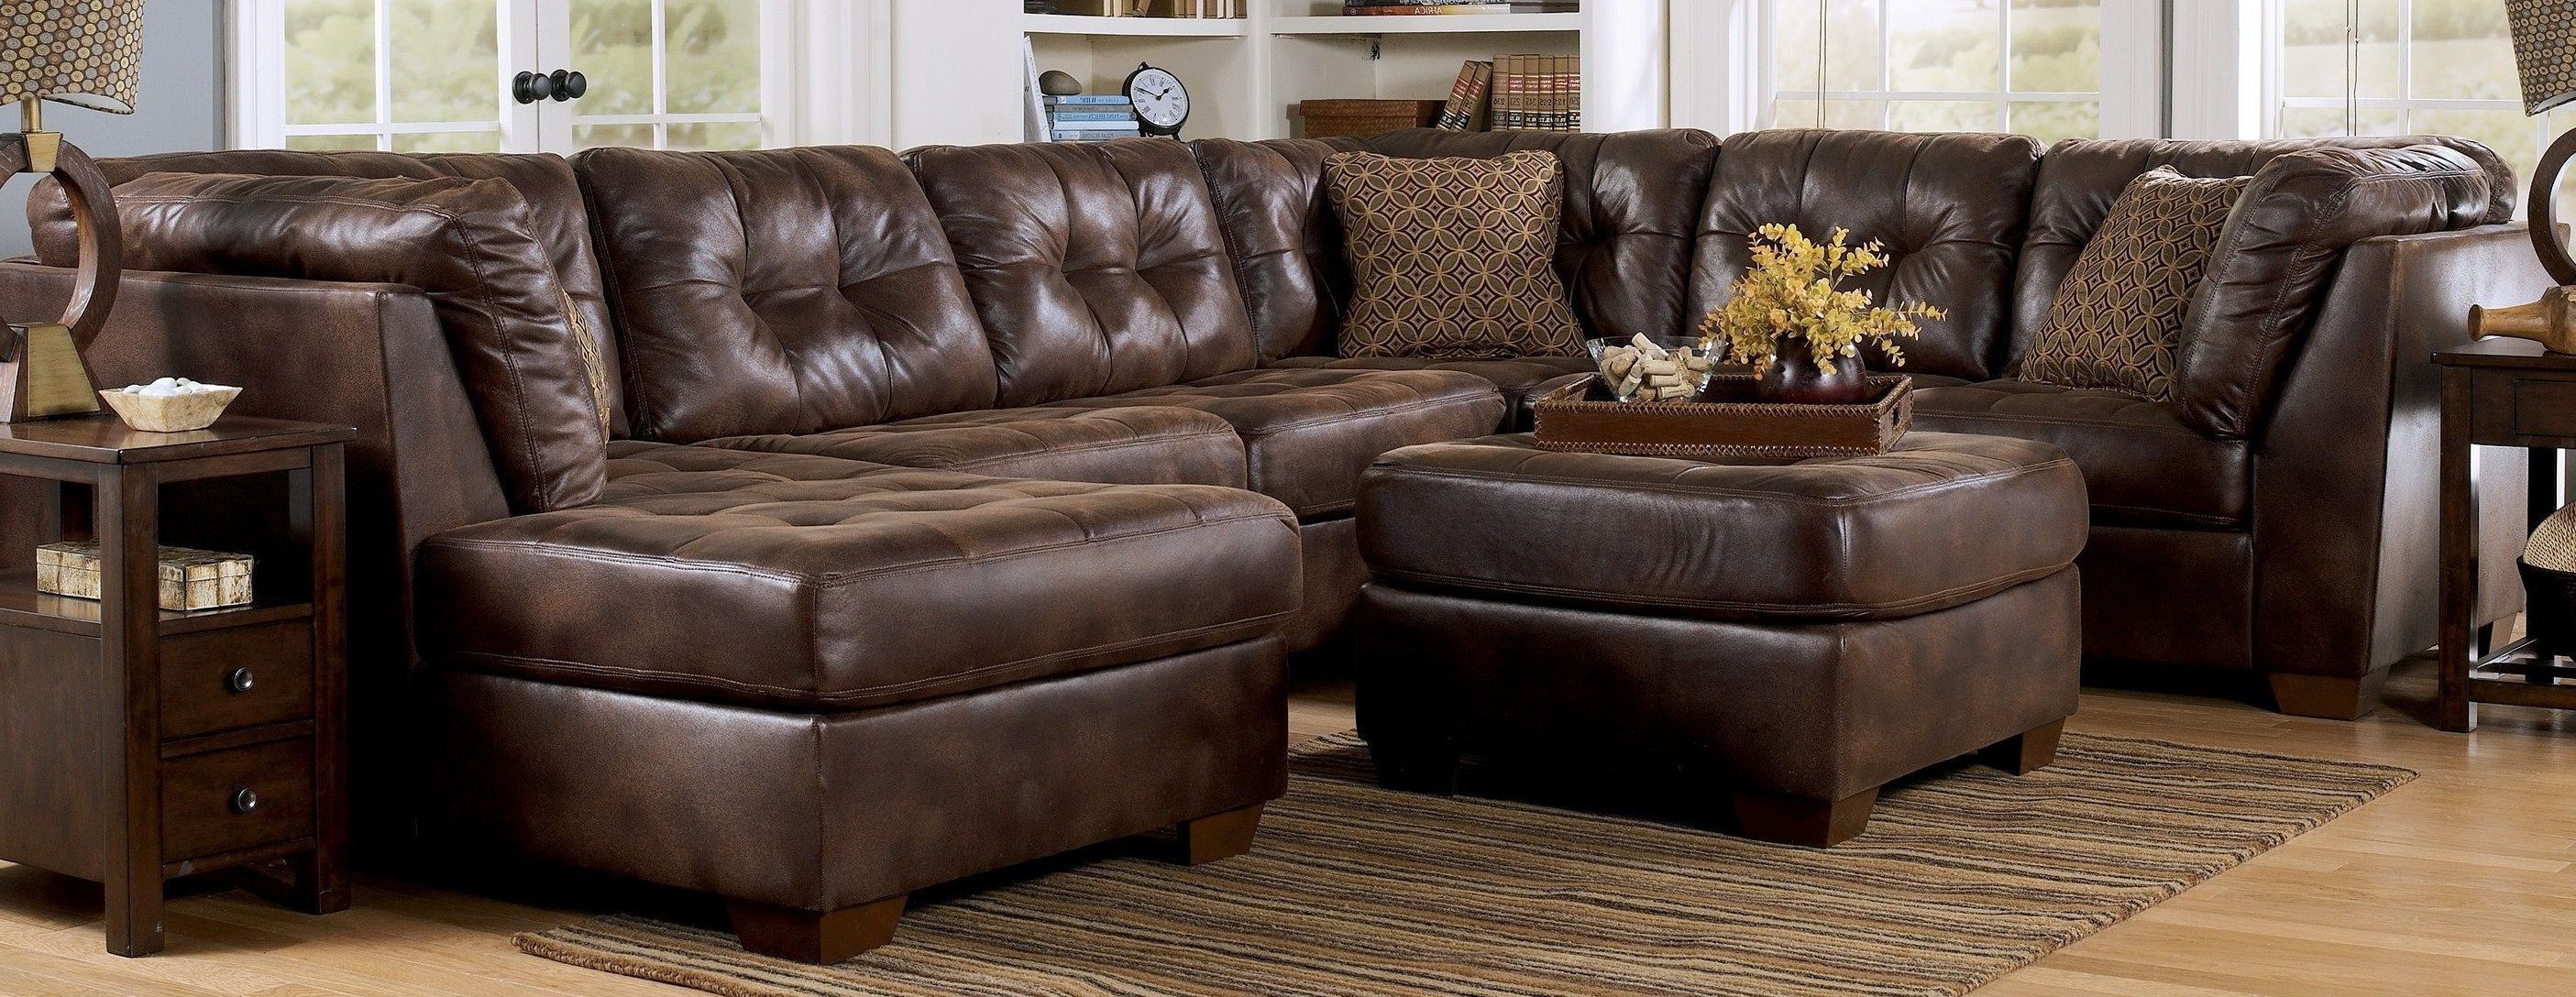 My Parents Have This Couch, And Now We're Saving For It! Its Sooo With Regard To Well Known Sectionals With Oversized Ottoman (View 13 of 20)